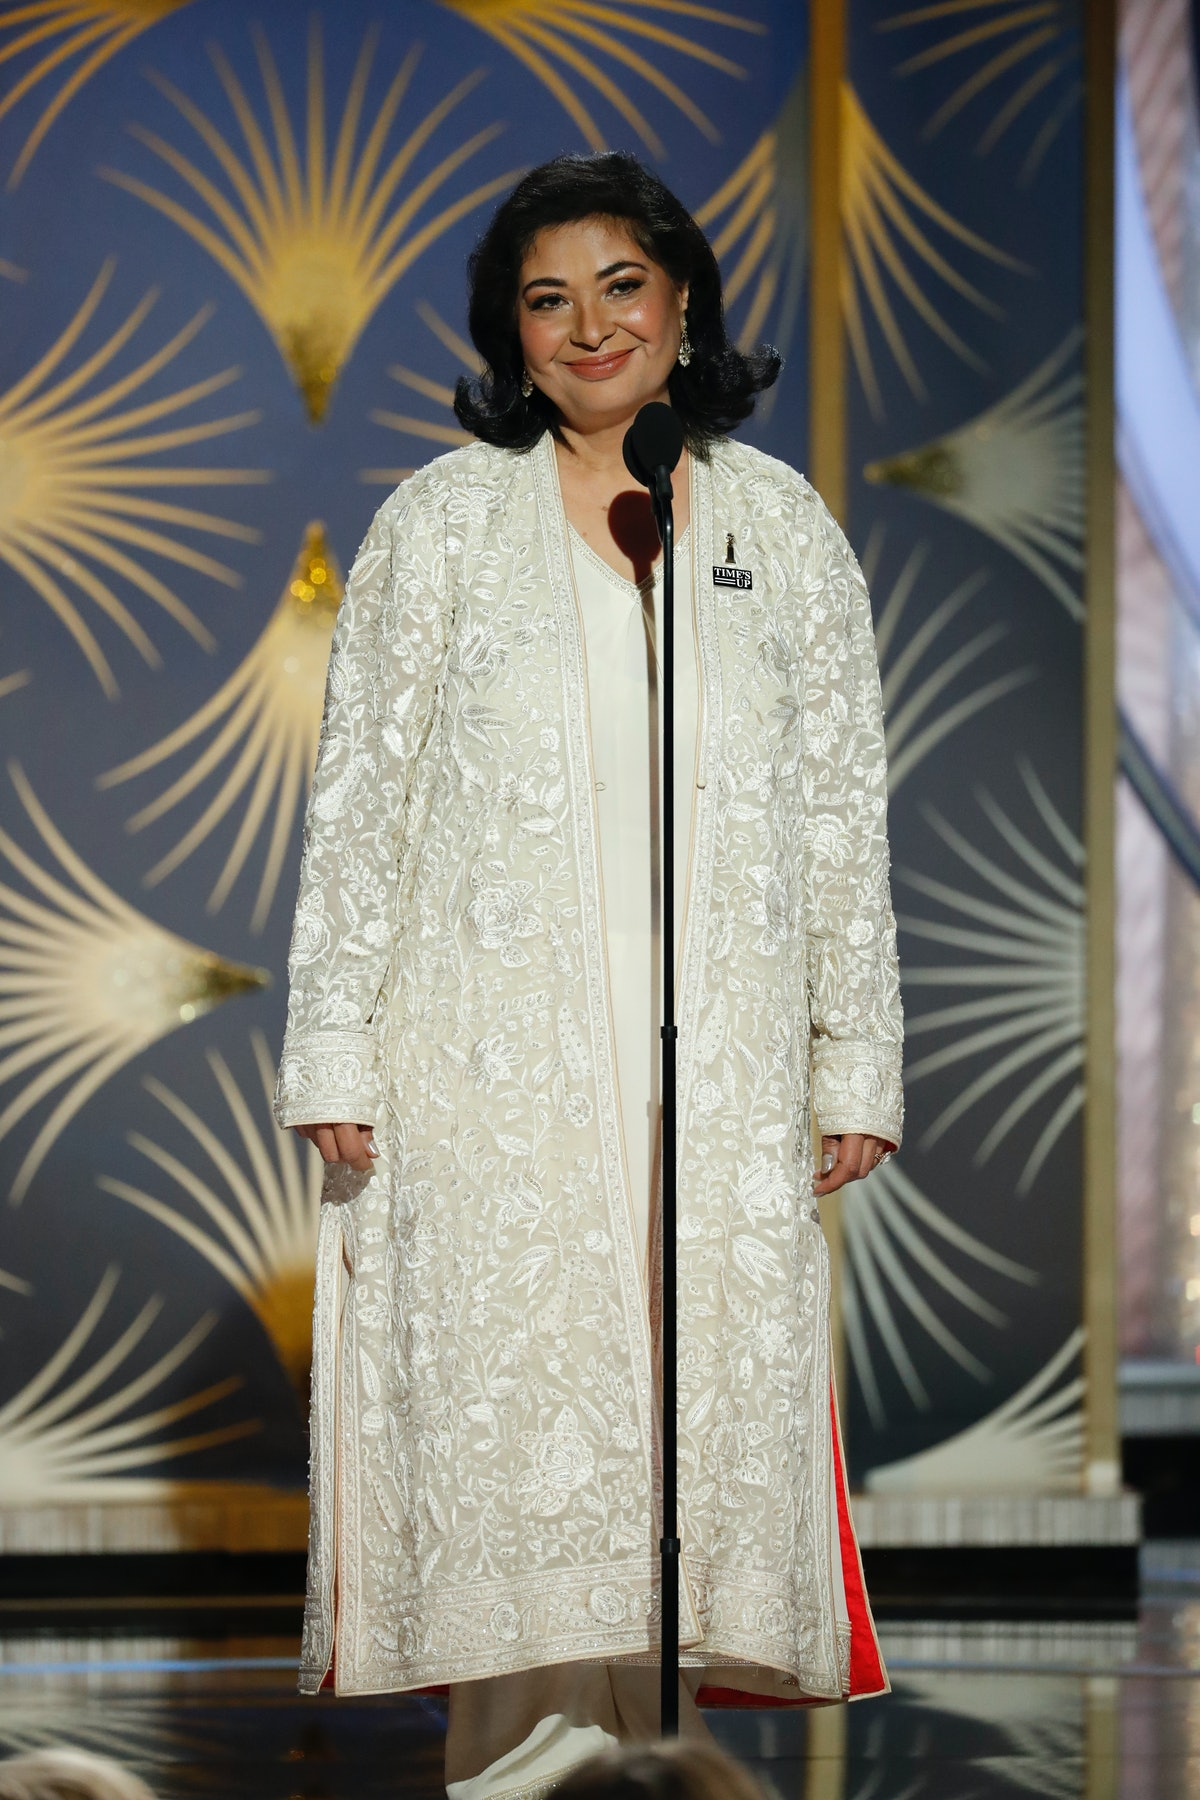 """Hollywood Foreign Press Association President Meher Tatna Wants You To Know The Golden Globes Are More Than Just """"The Fun One"""""""